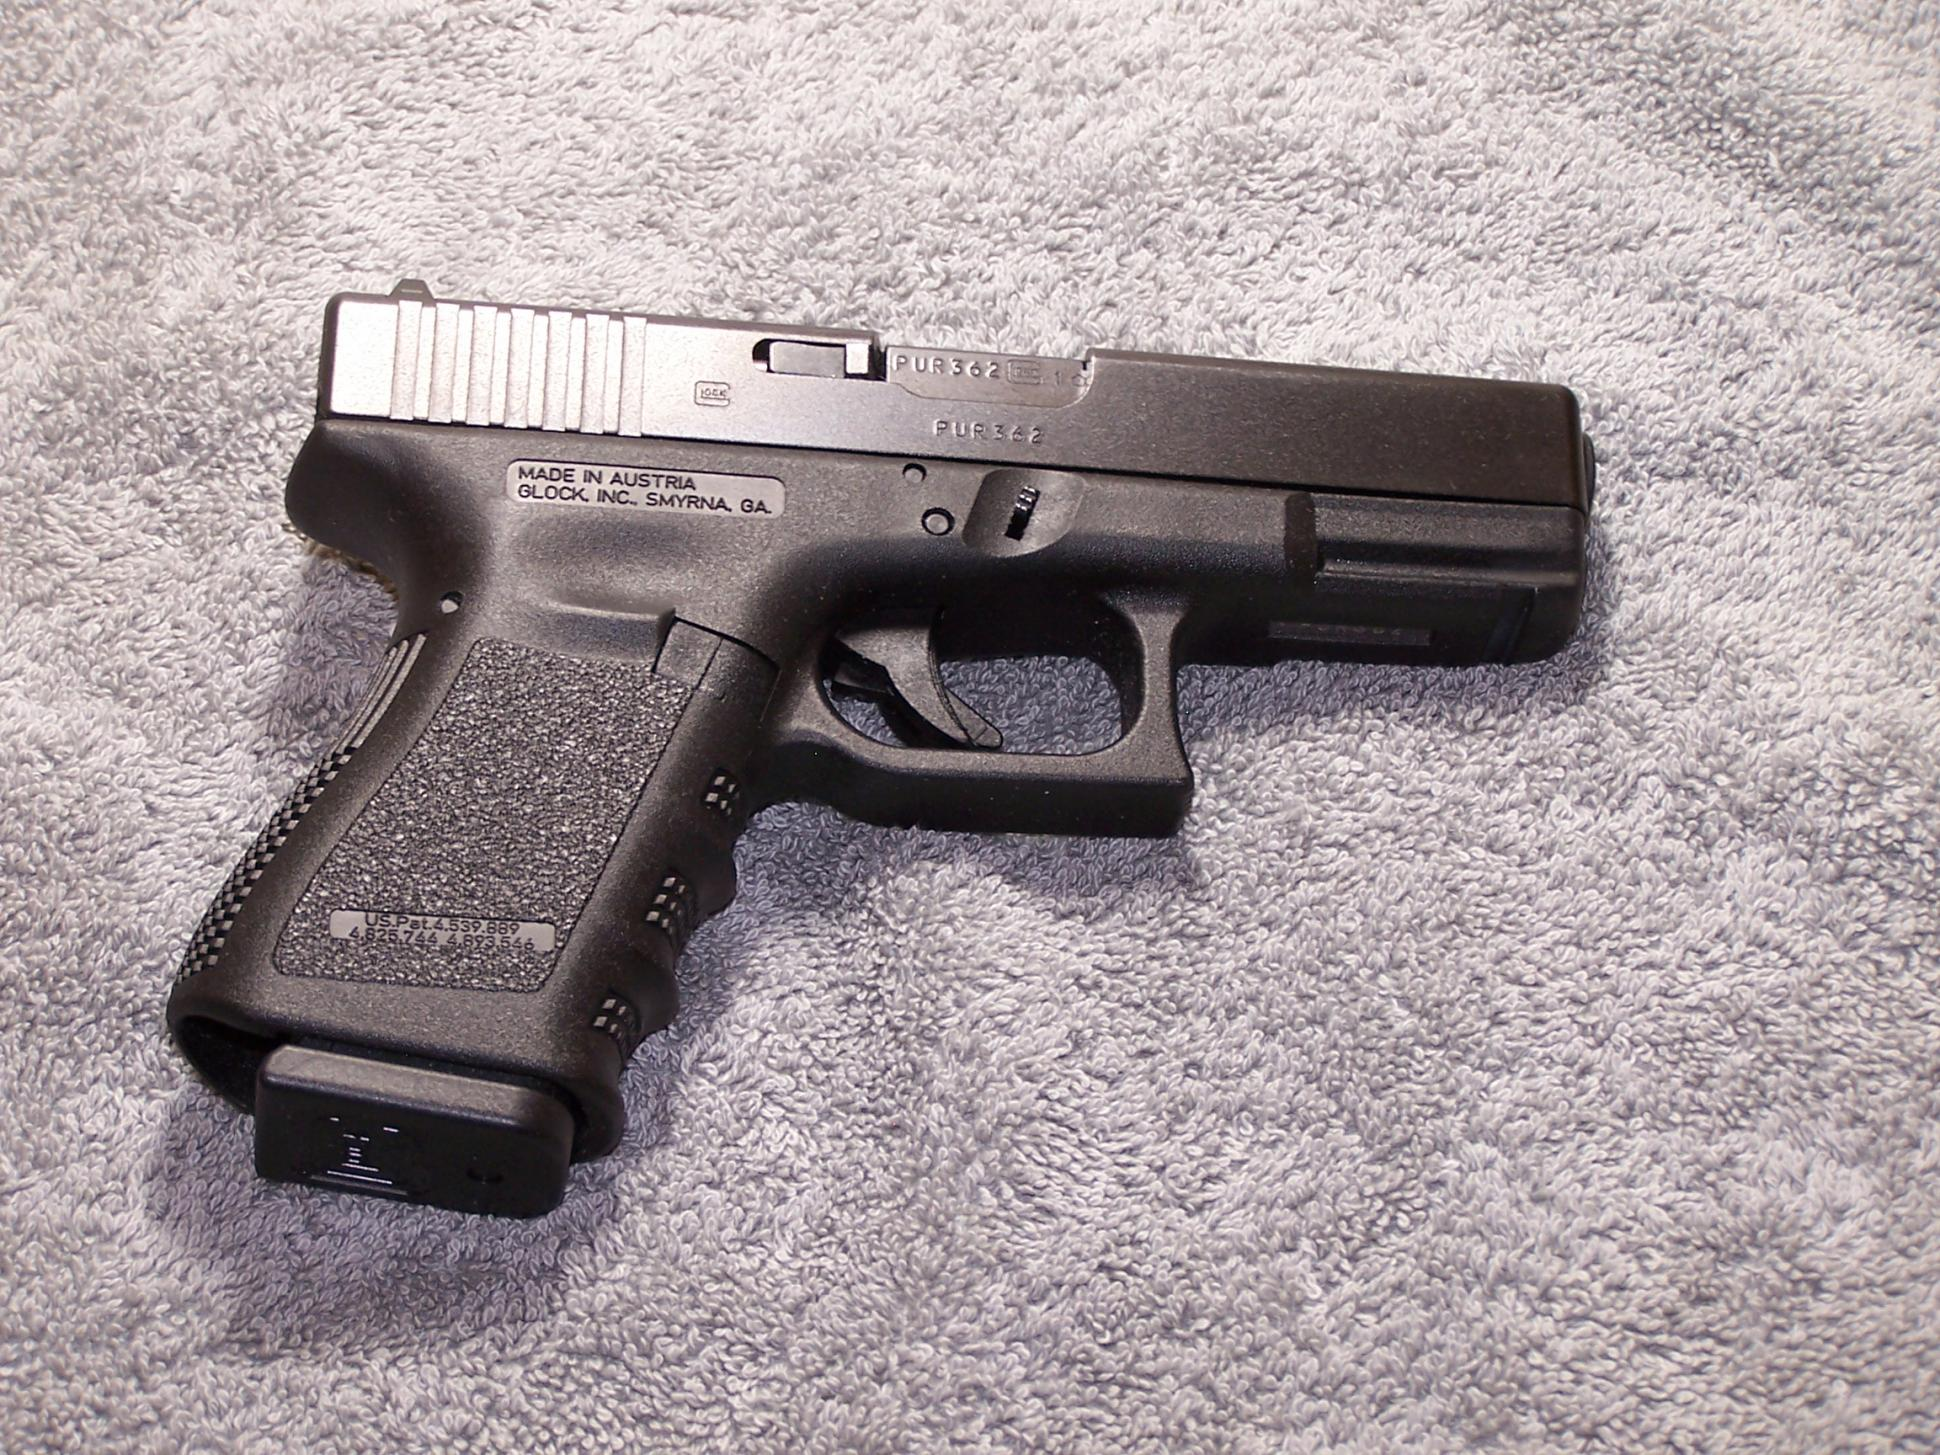 Glock 17 or 19: which would serve me better?-pur362.jpg